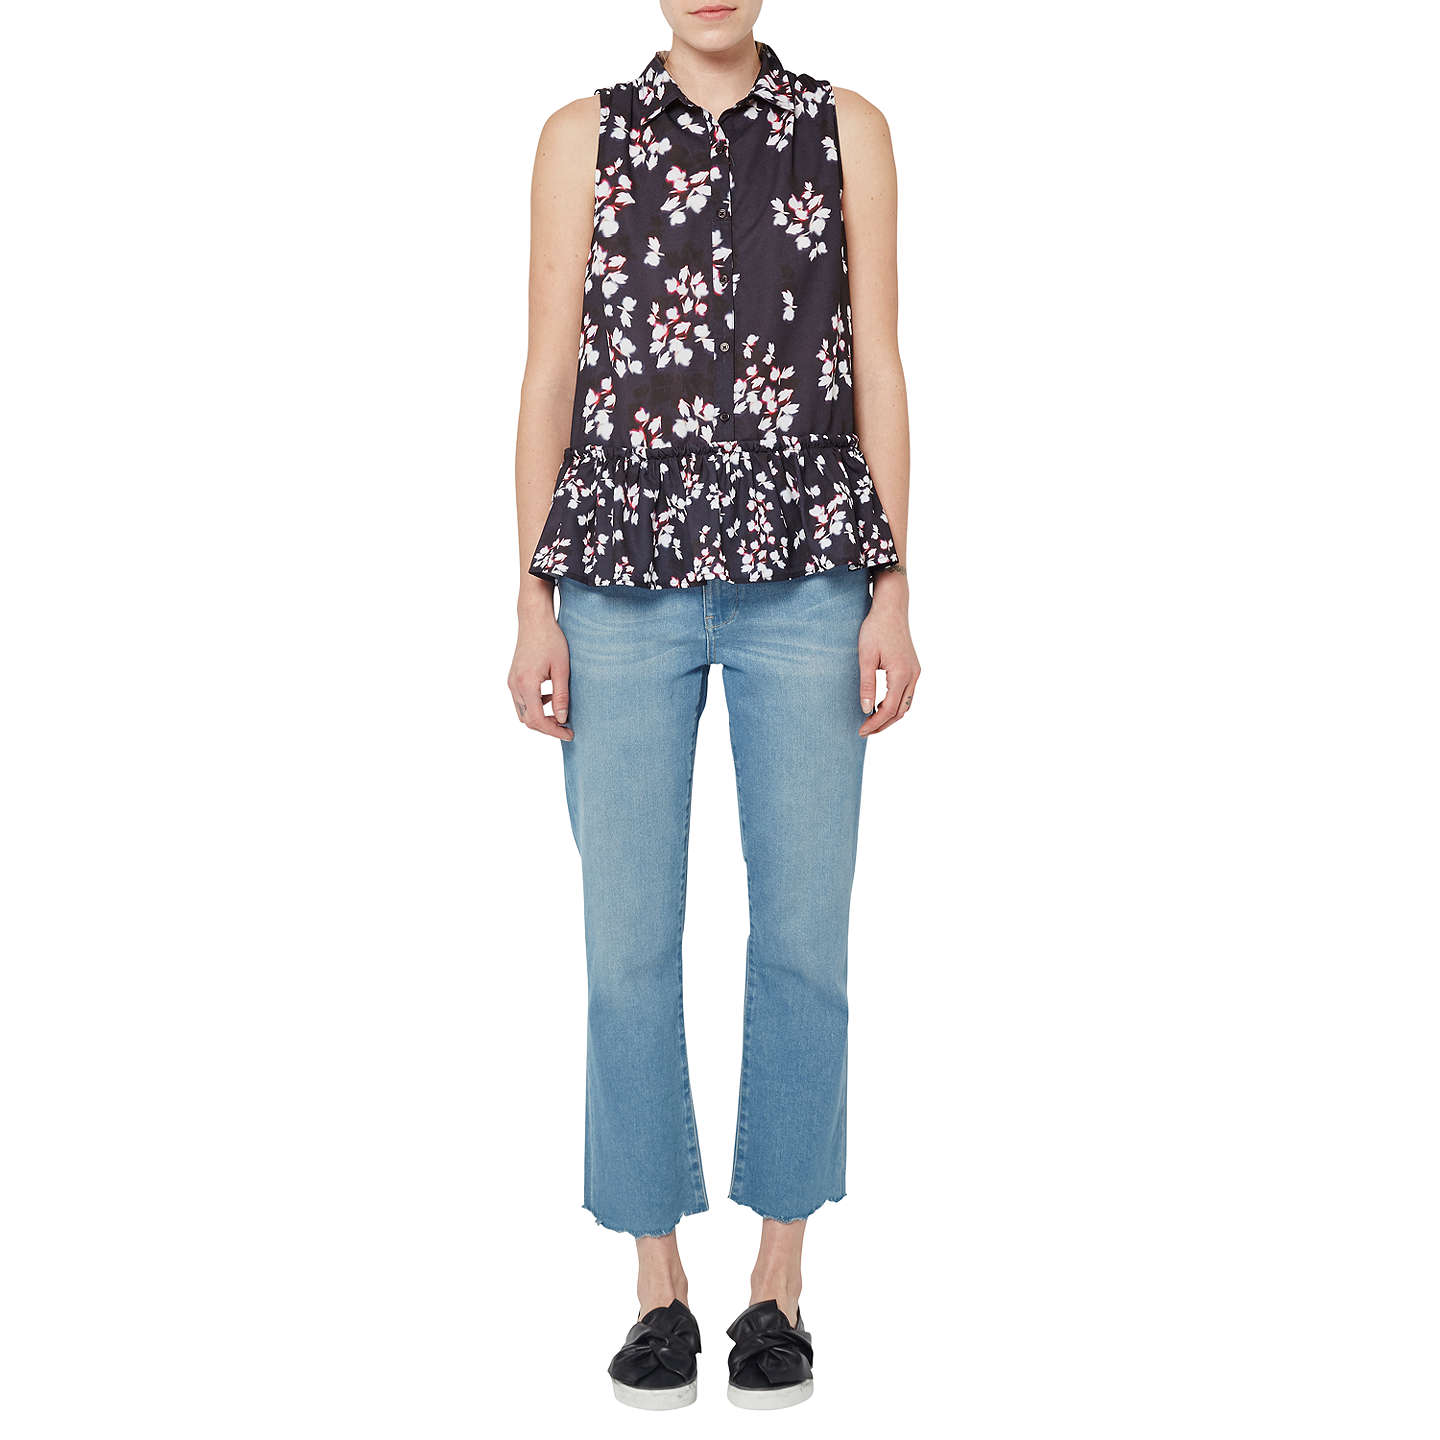 BuyFrench Connection Eva Crepe Top Utility BlueMulti